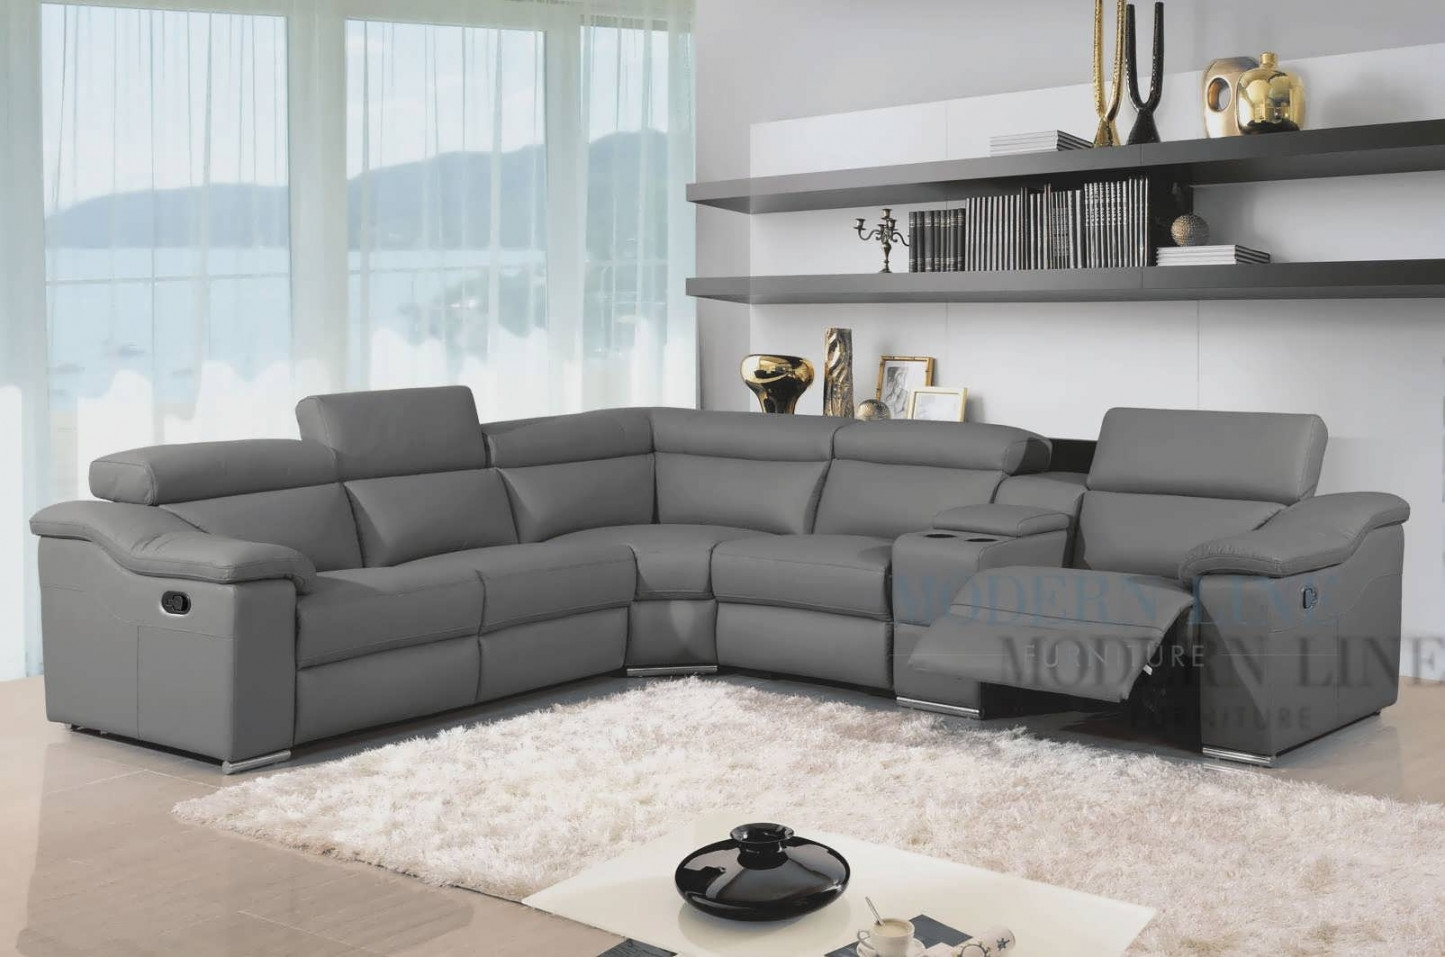 Sofa : Sectional Sofas With Recliners Leather Sectional Sofa | House Inside Sectional Sofas With Recliners Leather (View 10 of 10)